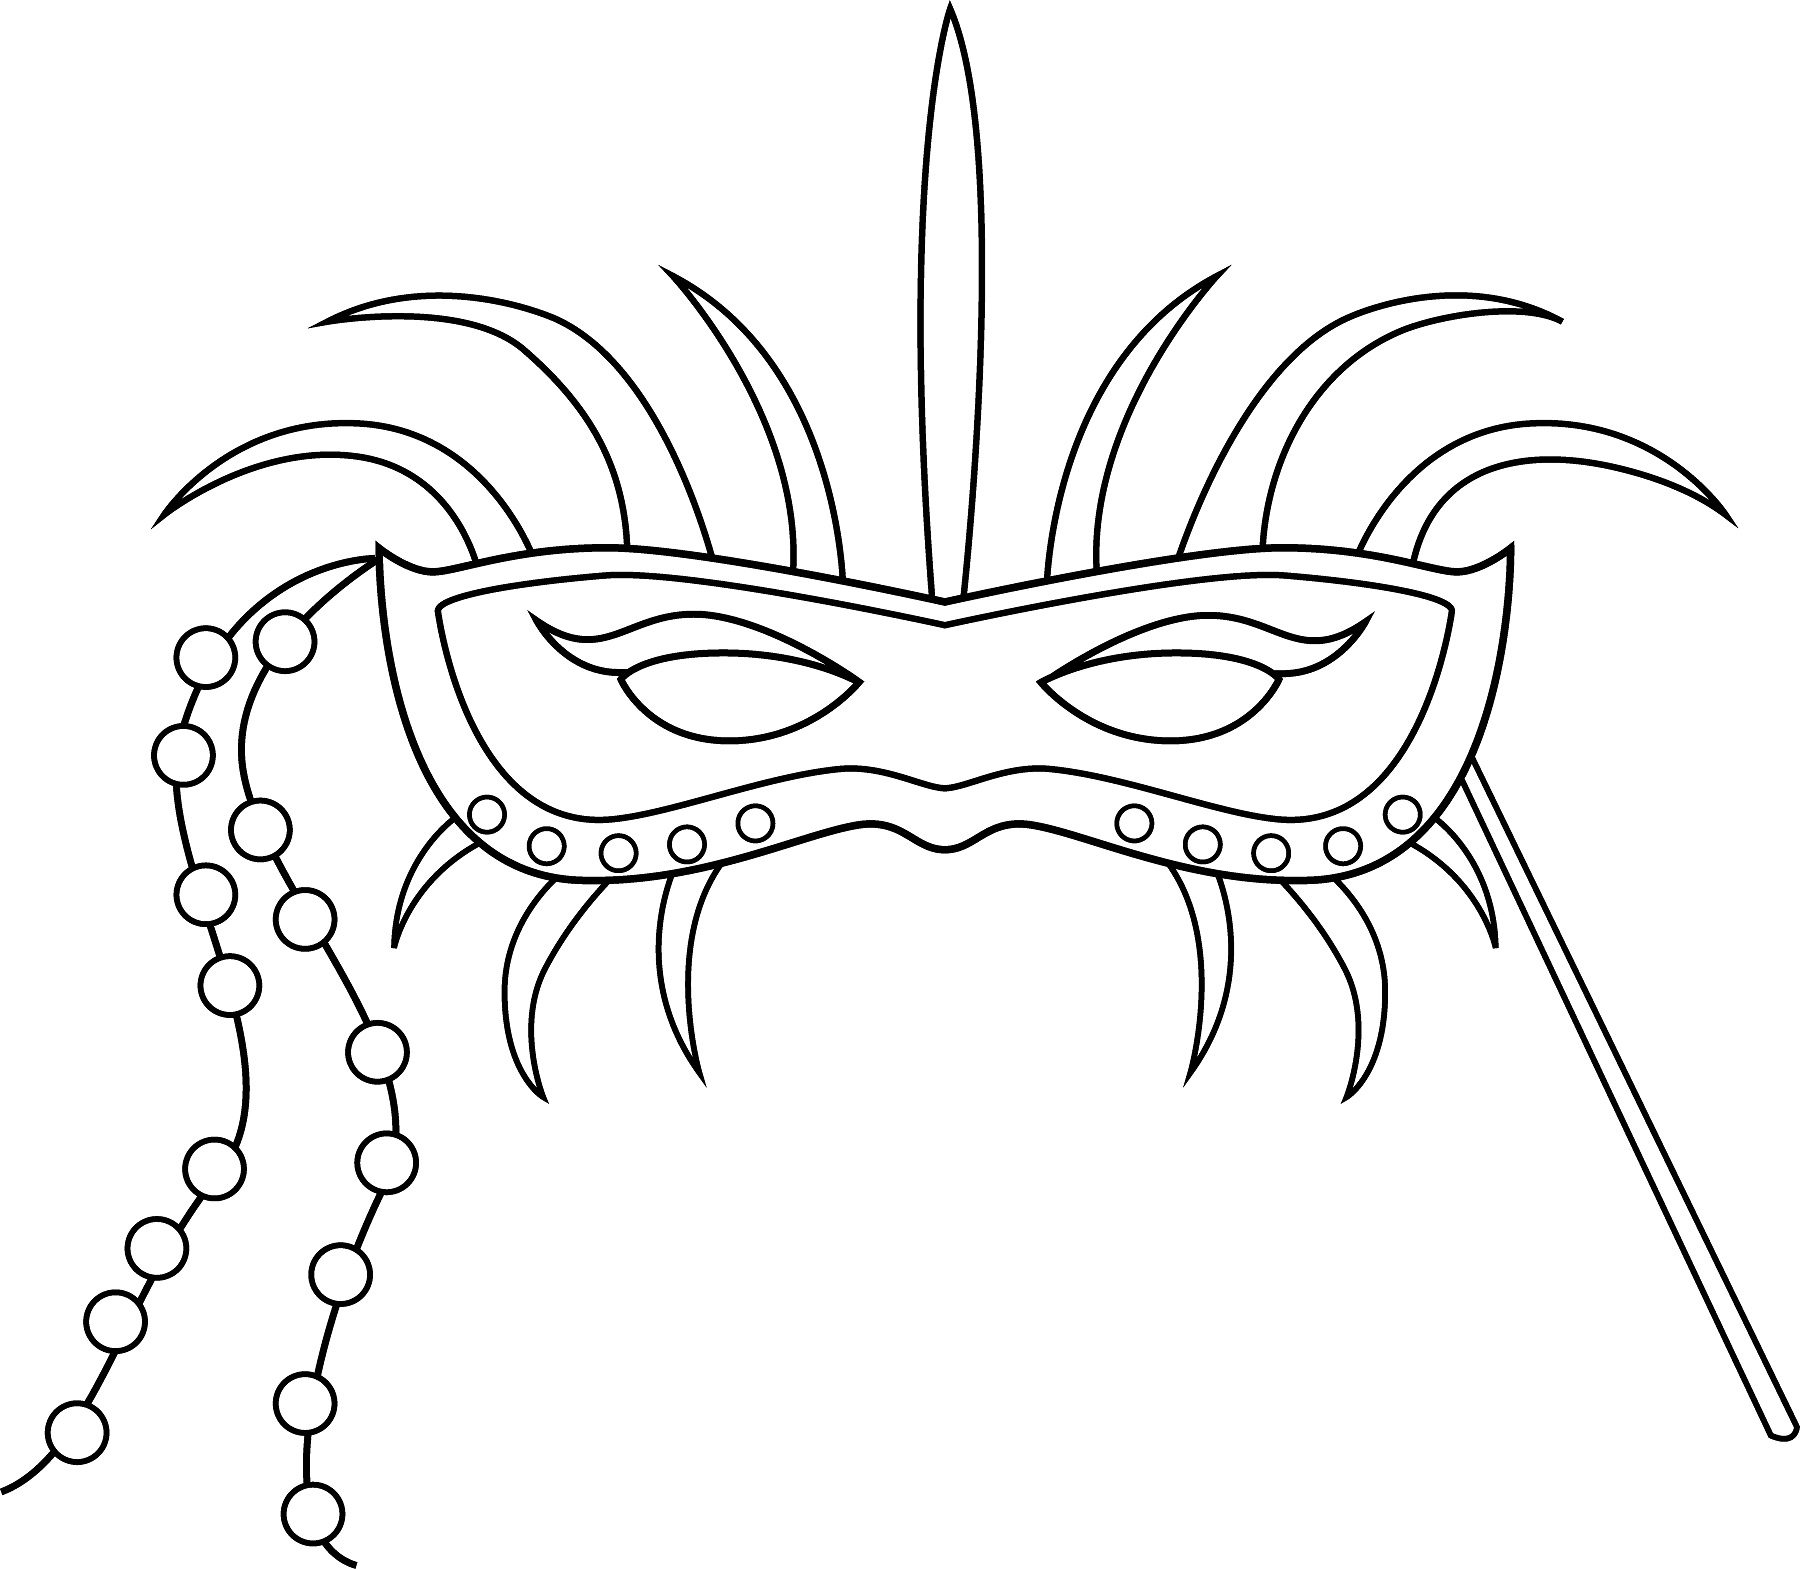 Free coloring pages for mardi gras - Mardi Gras Masks Coloring Pages